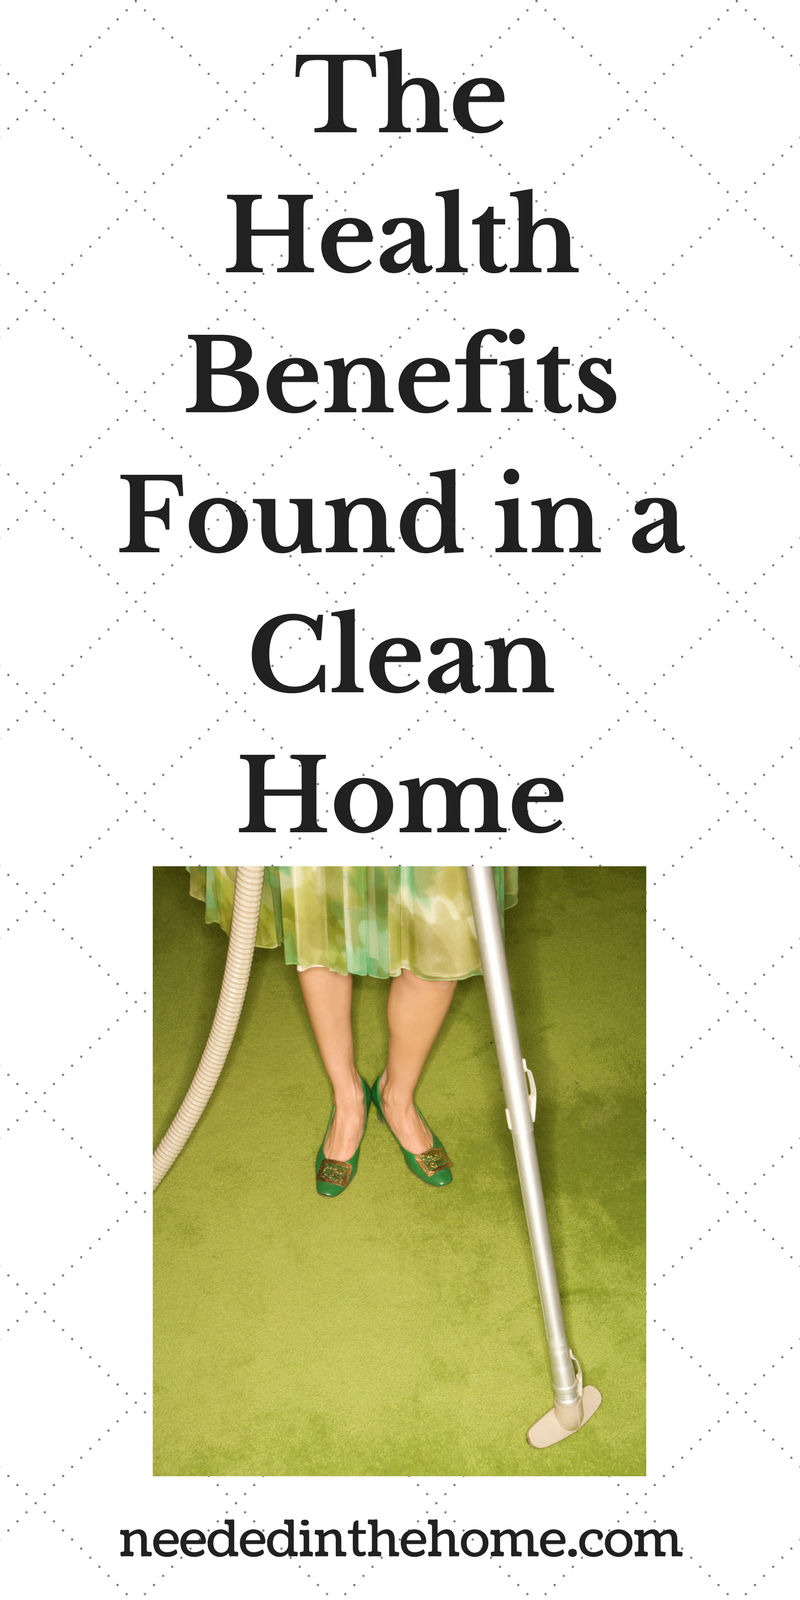 woman vacuuming a green carpet The Health Benefits Found in a Clean Home neededinthehome.com